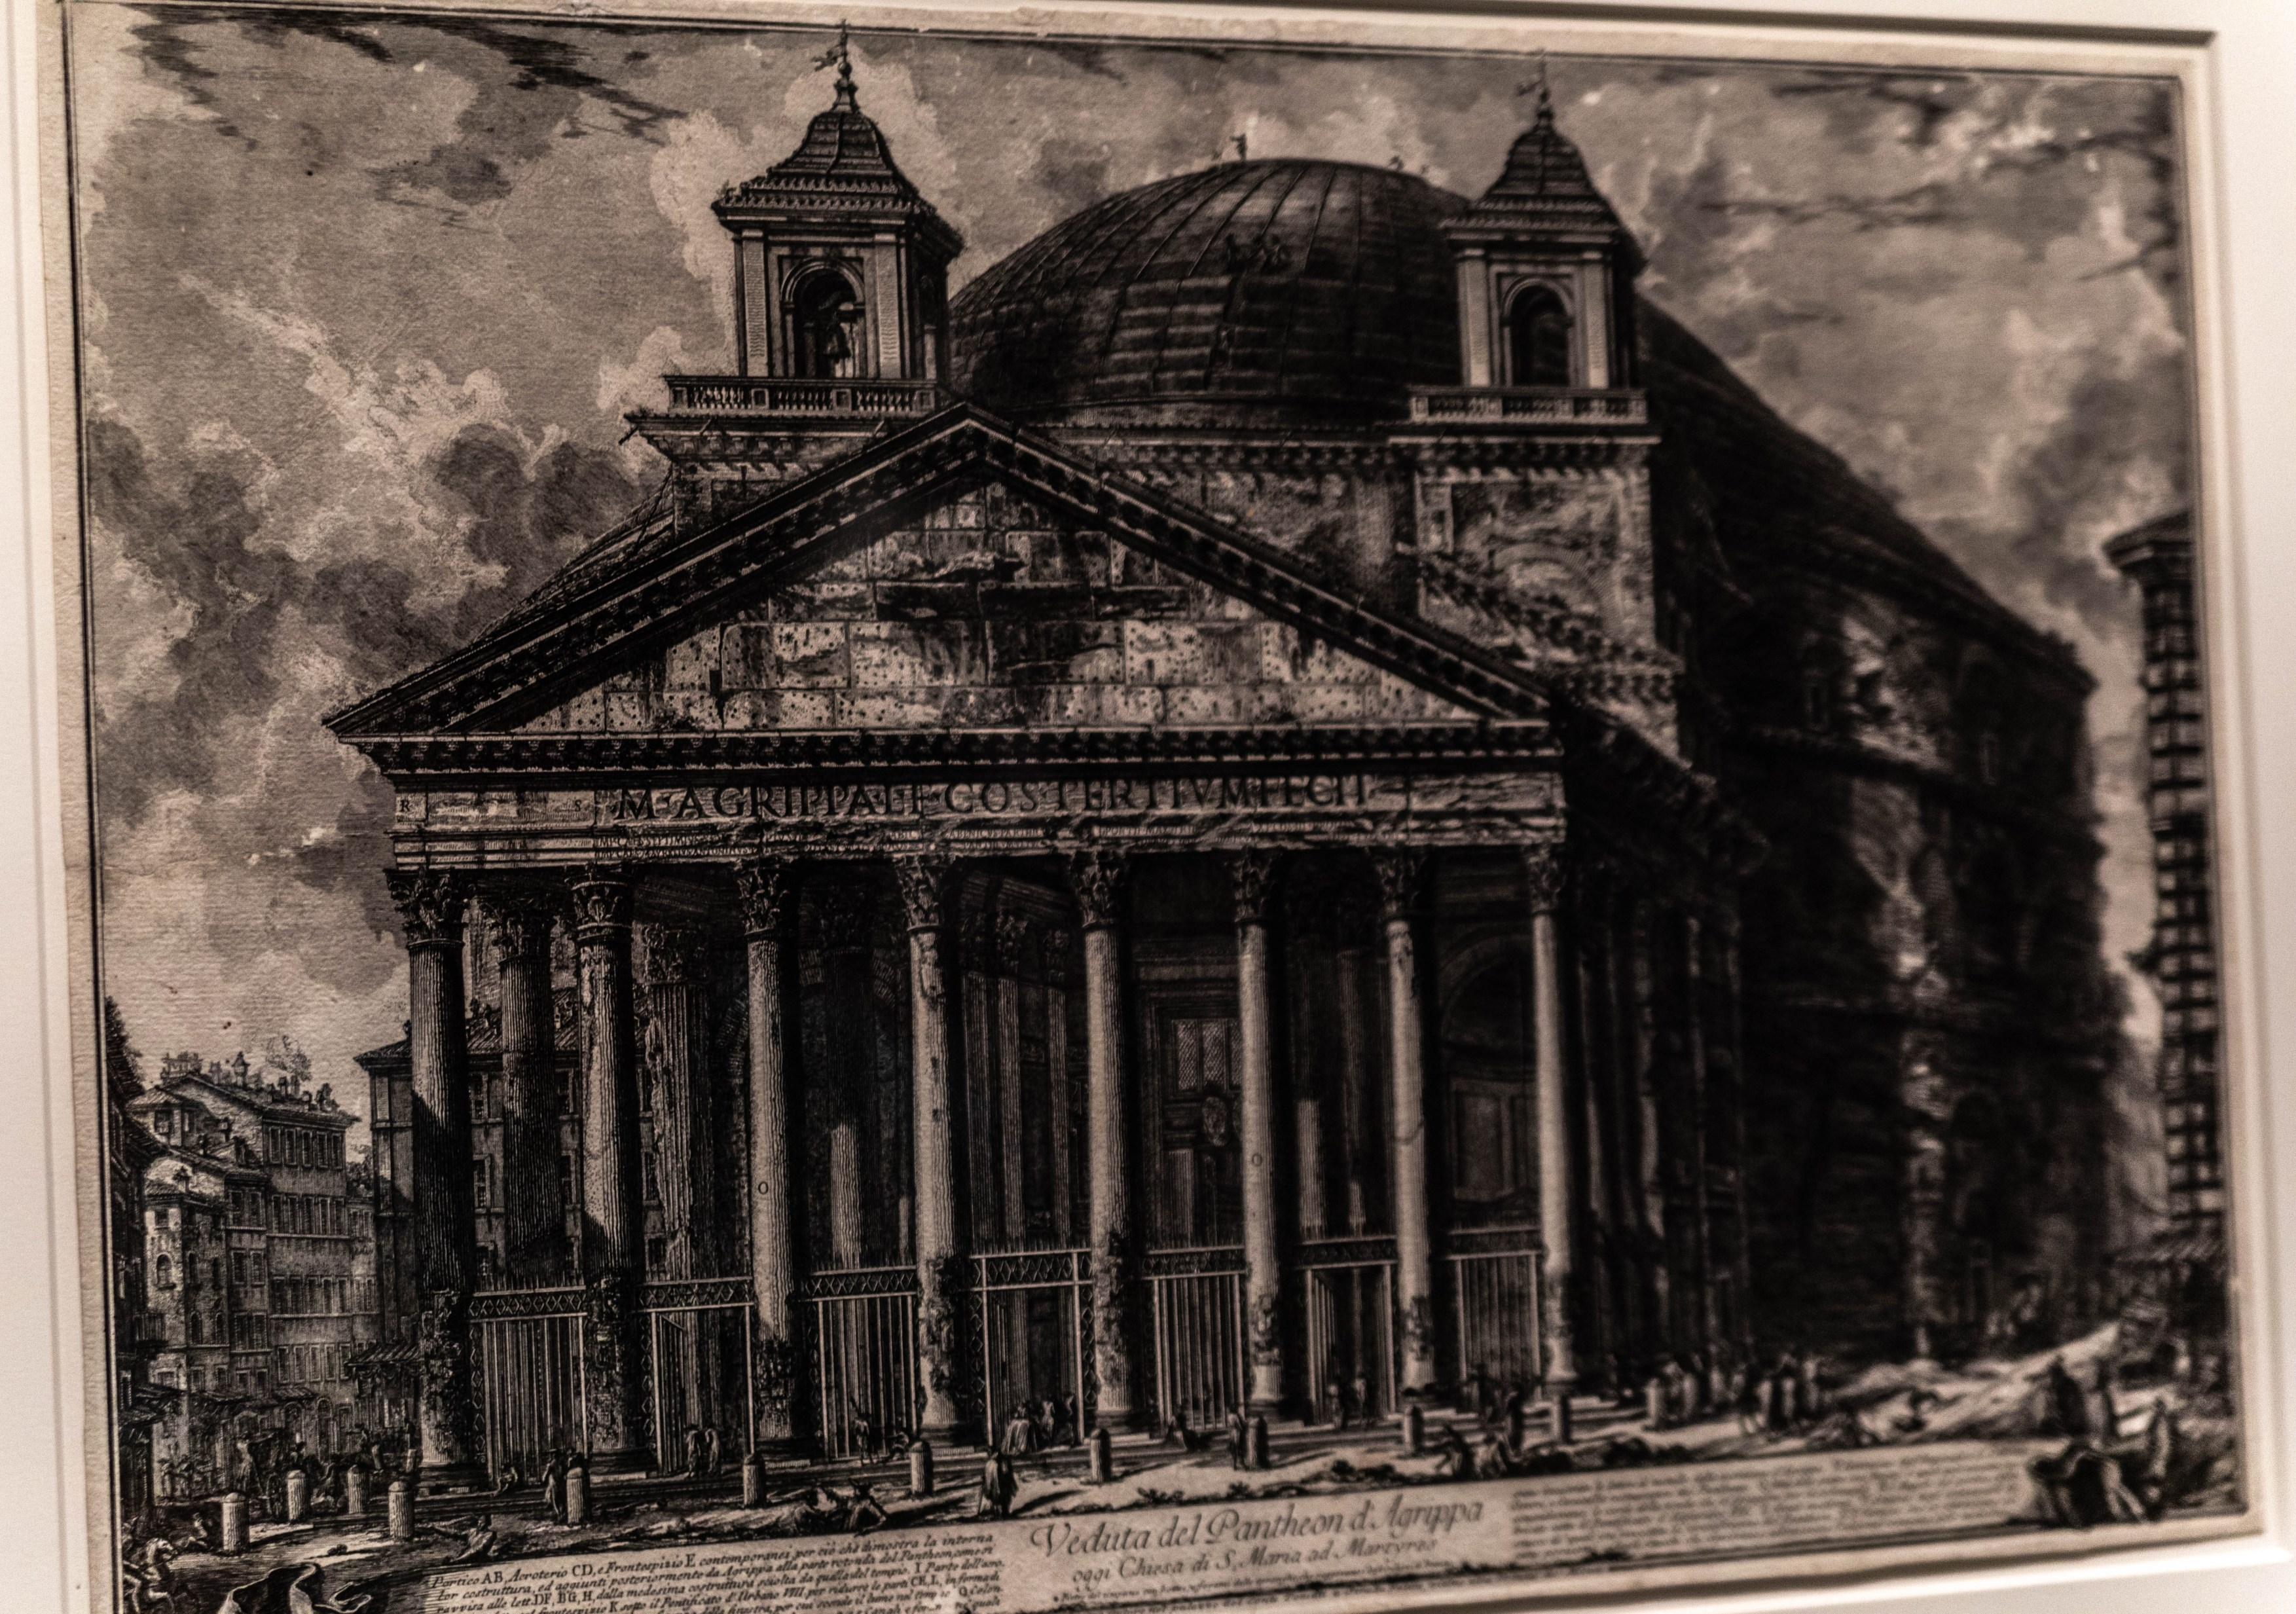 Drawing of the Pantheon at LACMA Los Angeles County Museum of Art